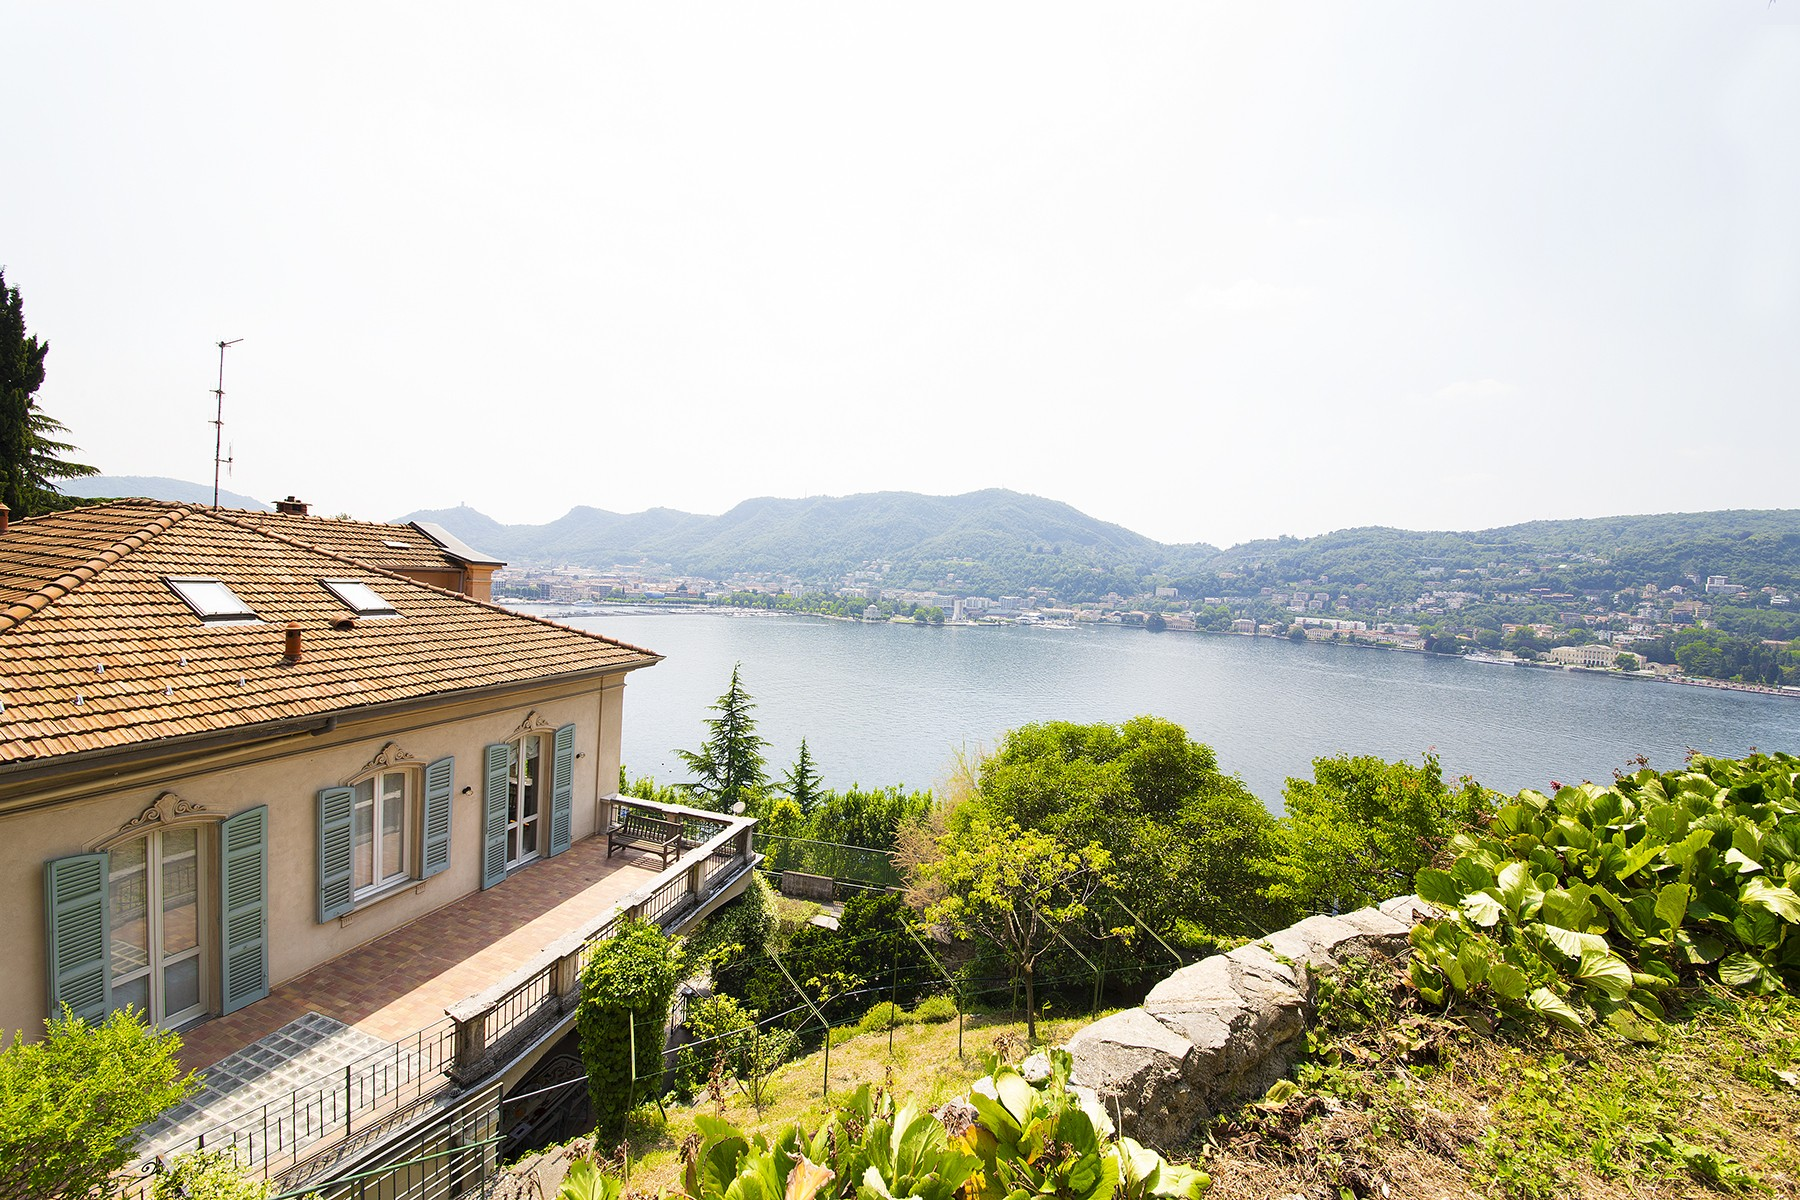 Single Family Home for Sale at Historic villa in the best panoramic area of the city of Como Via Torno Como, Como 22100 Italy